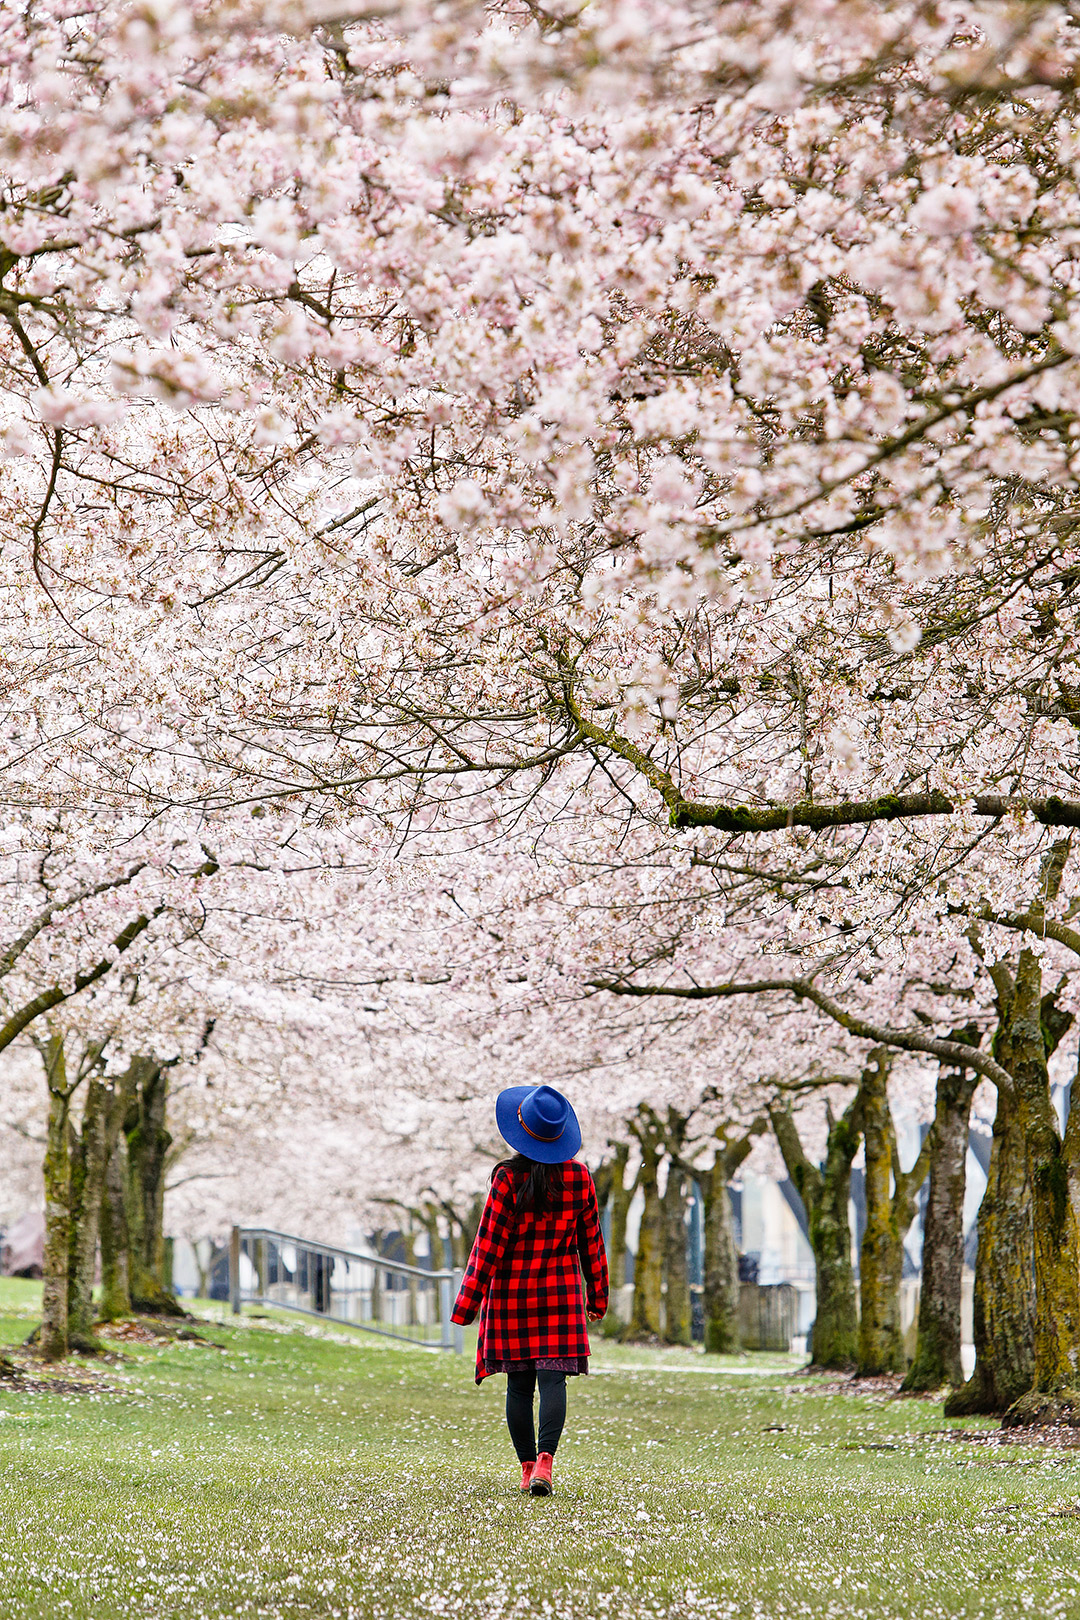 Japanese American Historical Plaza at Tom McCall Waterfront Park - Where and When to Find Portland Cherry Blossoms // Local Adventurer #pdx #oregon #cherryblossom